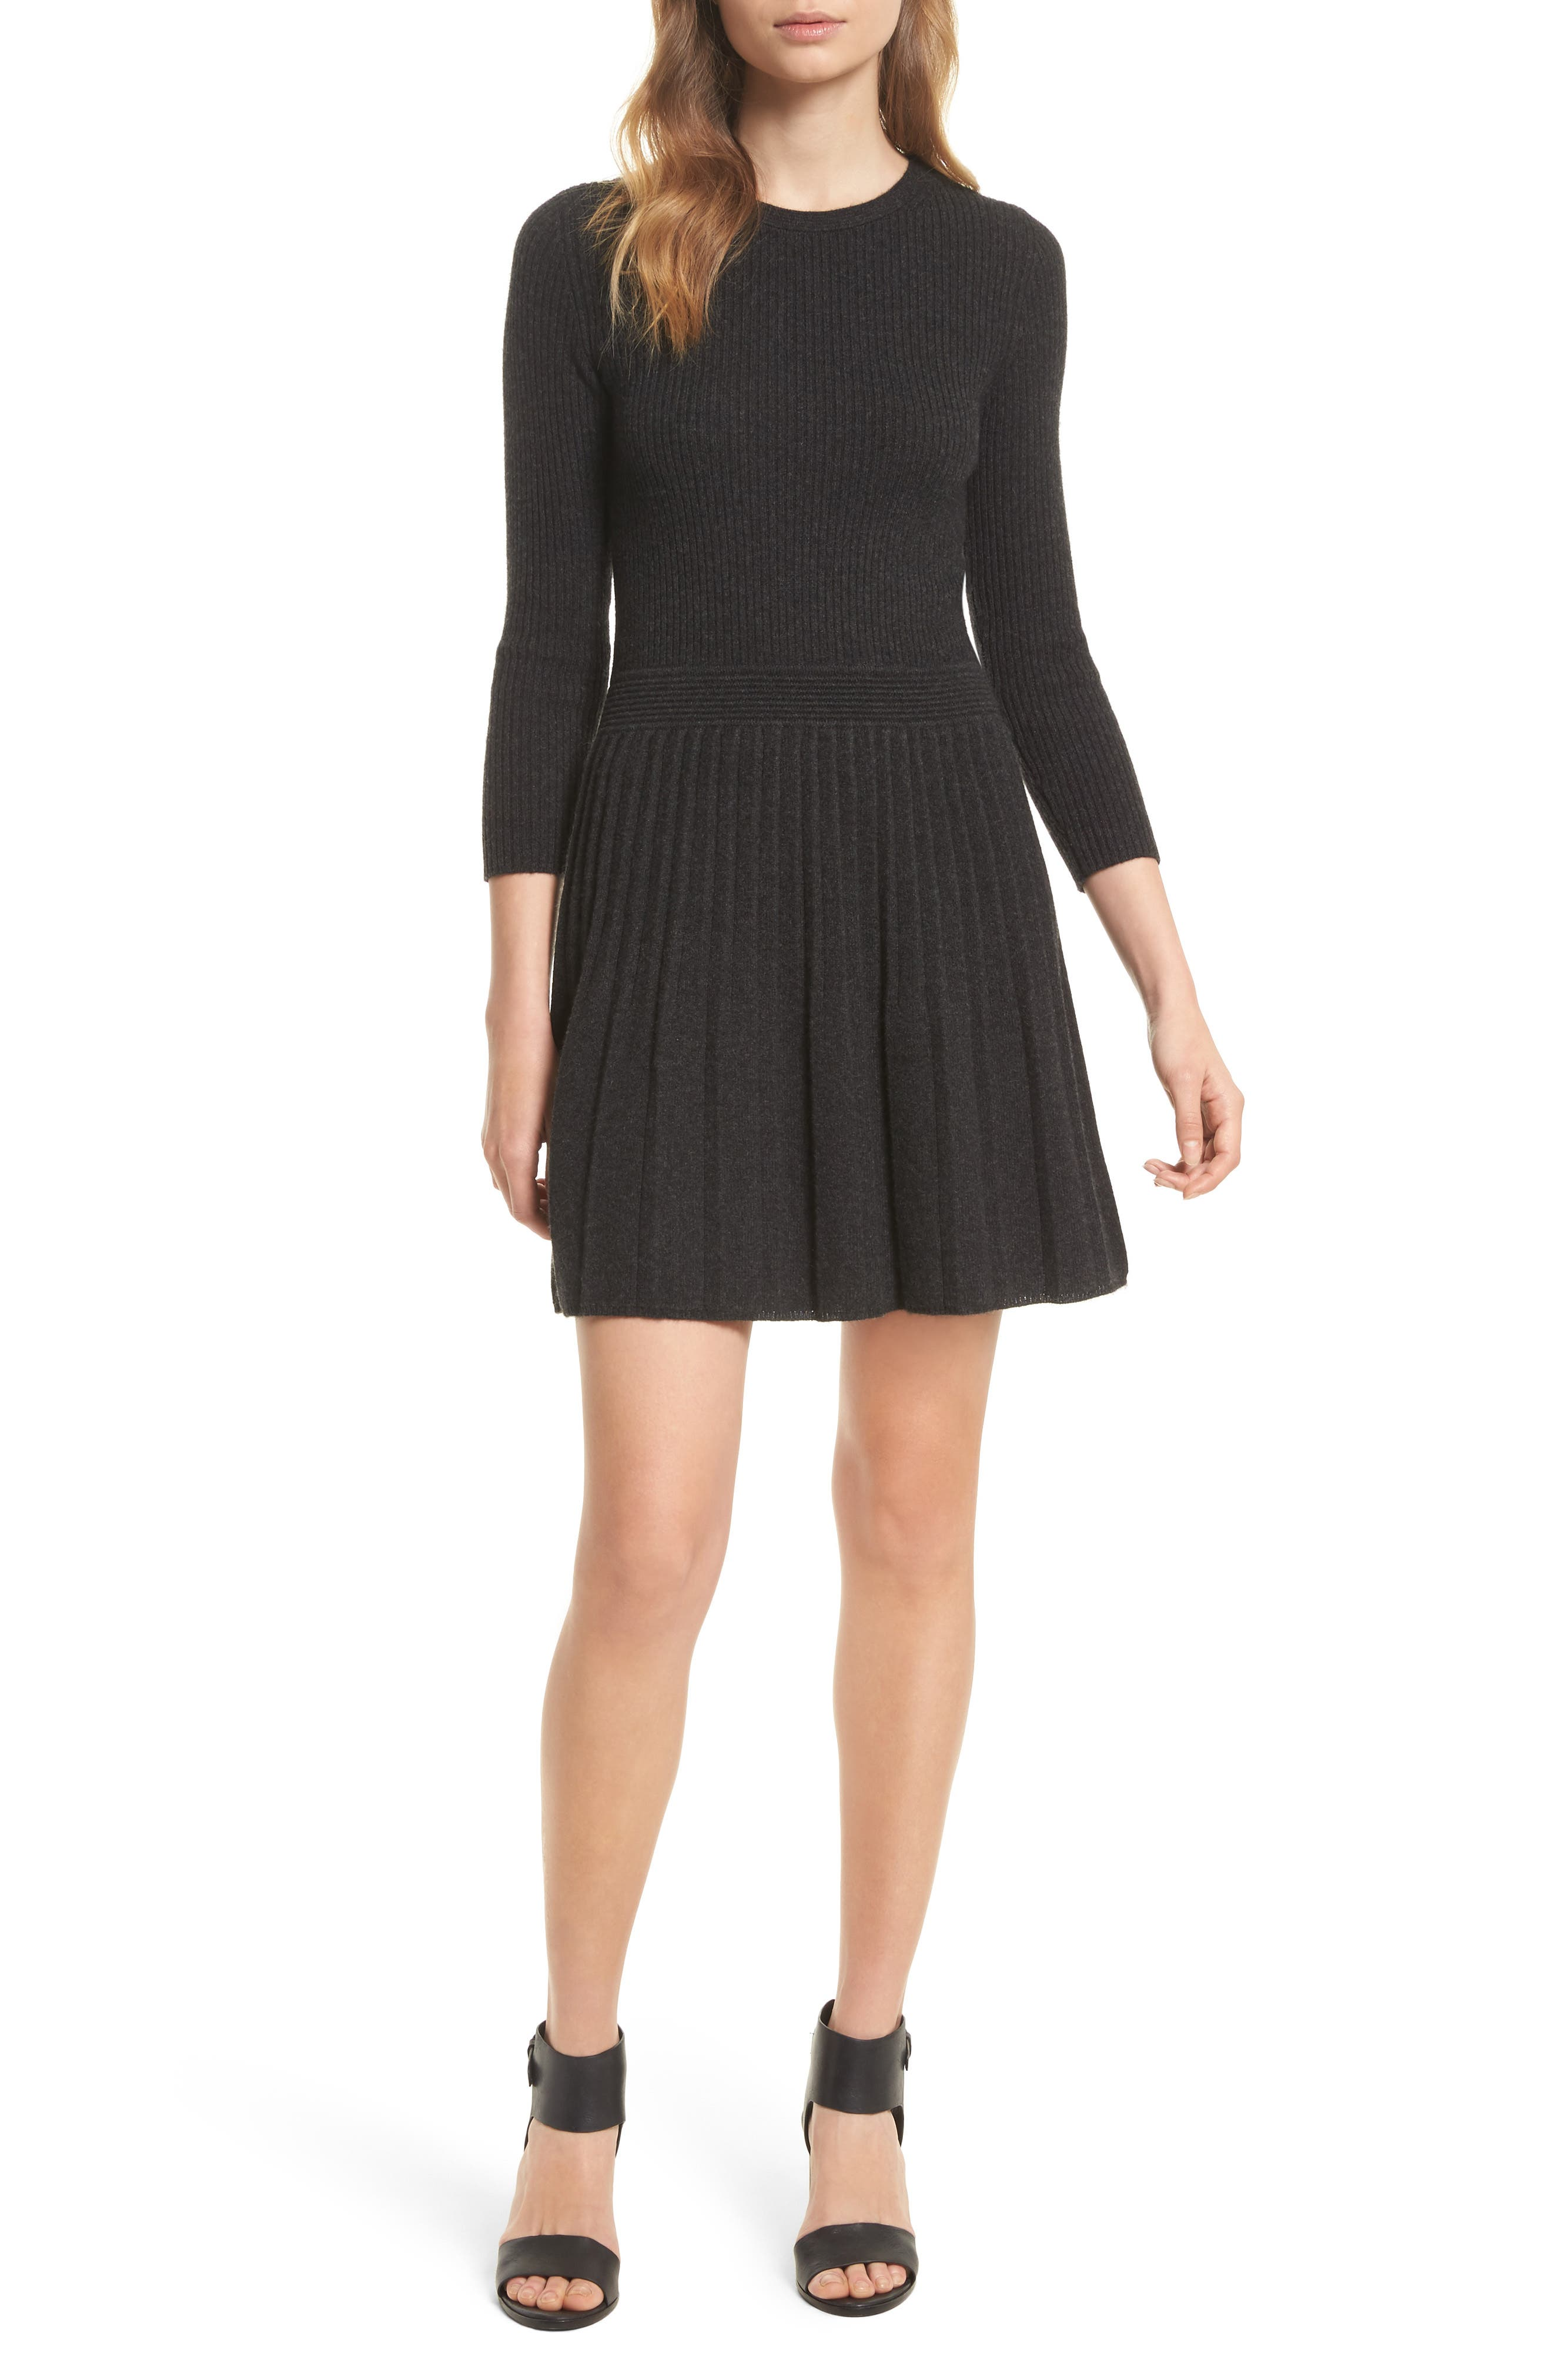 Peronne B Knit Wool & Cashmere Fit & Flare Dress,                             Main thumbnail 1, color,                             071